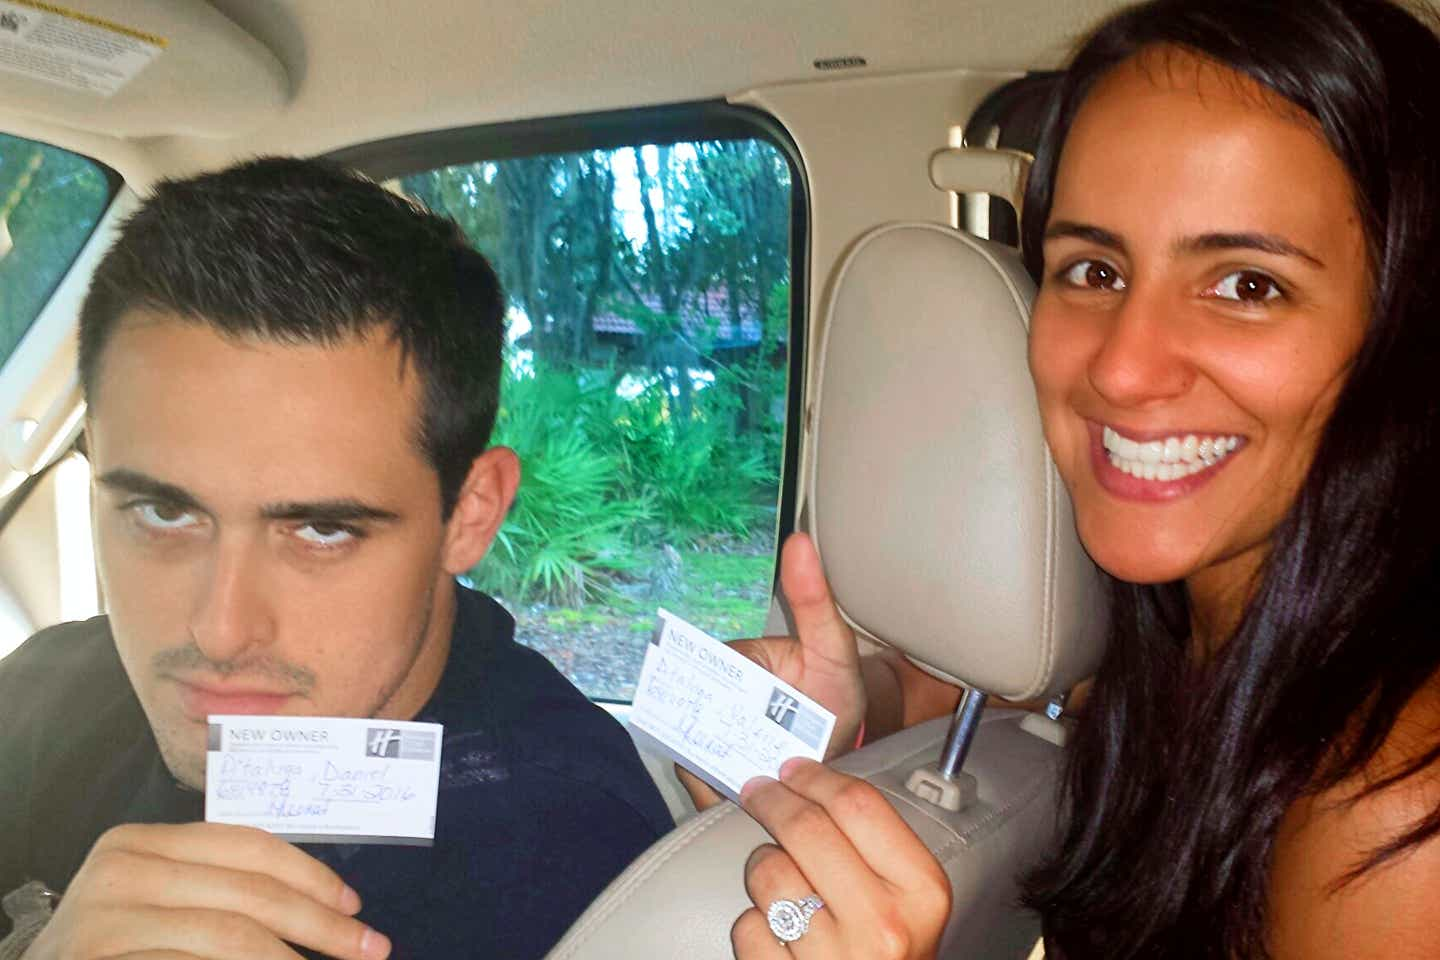 Author, Danny Pitaluga (left), looks quite displeased as he and his wife, Val (right), gives a thumbs up inside their parent's car holding their Holiday Inn Club Vacations Membership Cards.